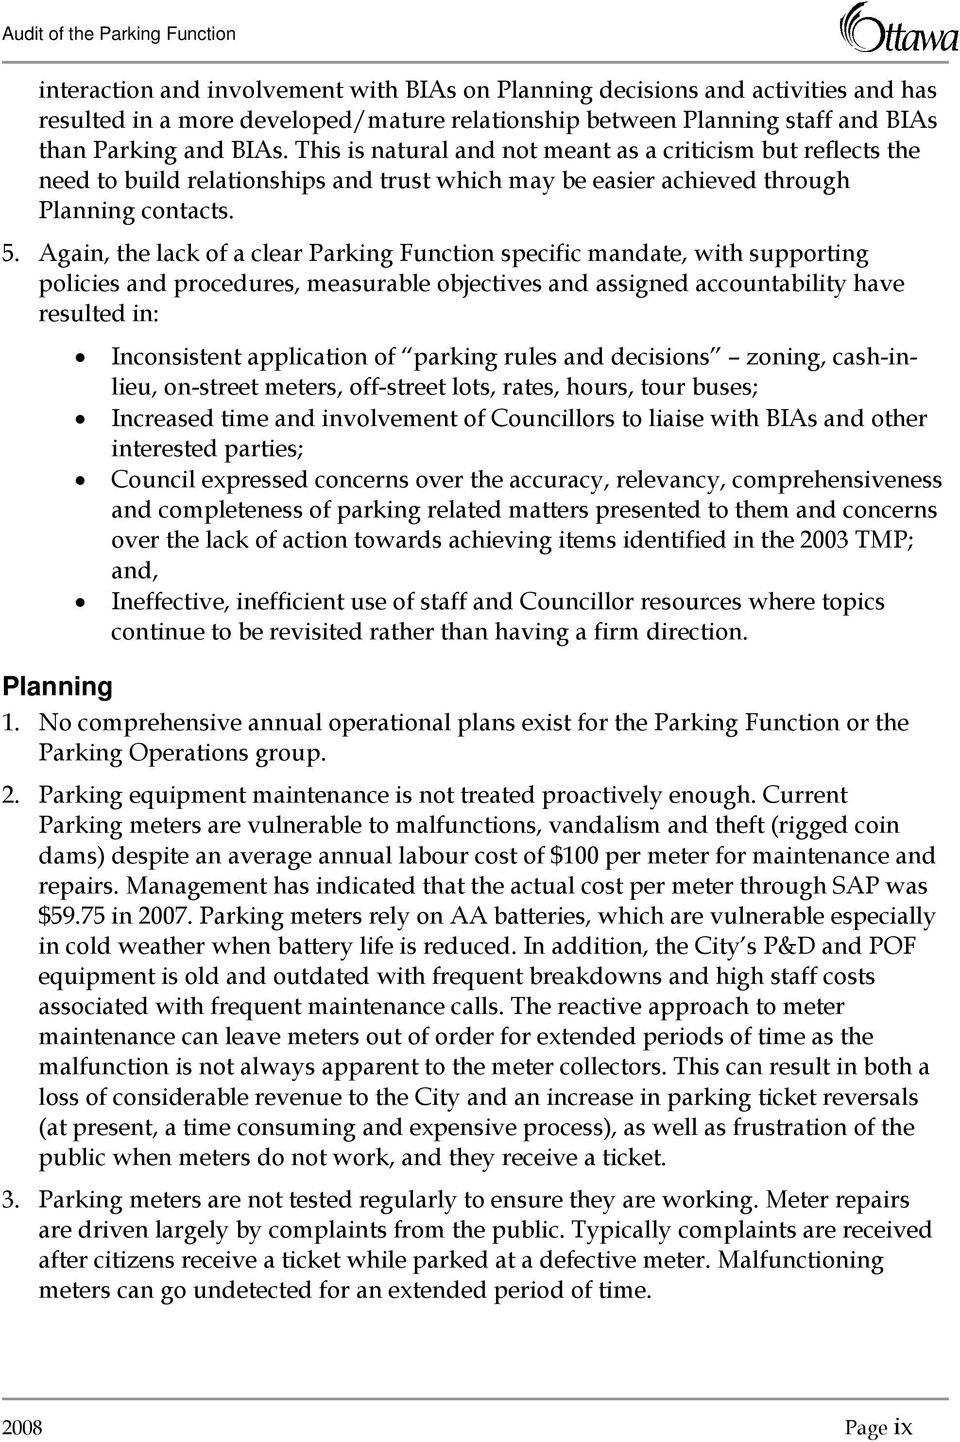 Again, the lack of a clear Parking Function specific mandate, with supporting policies and procedures, measurable objectives and assigned accountability have resulted in: Inconsistent application of